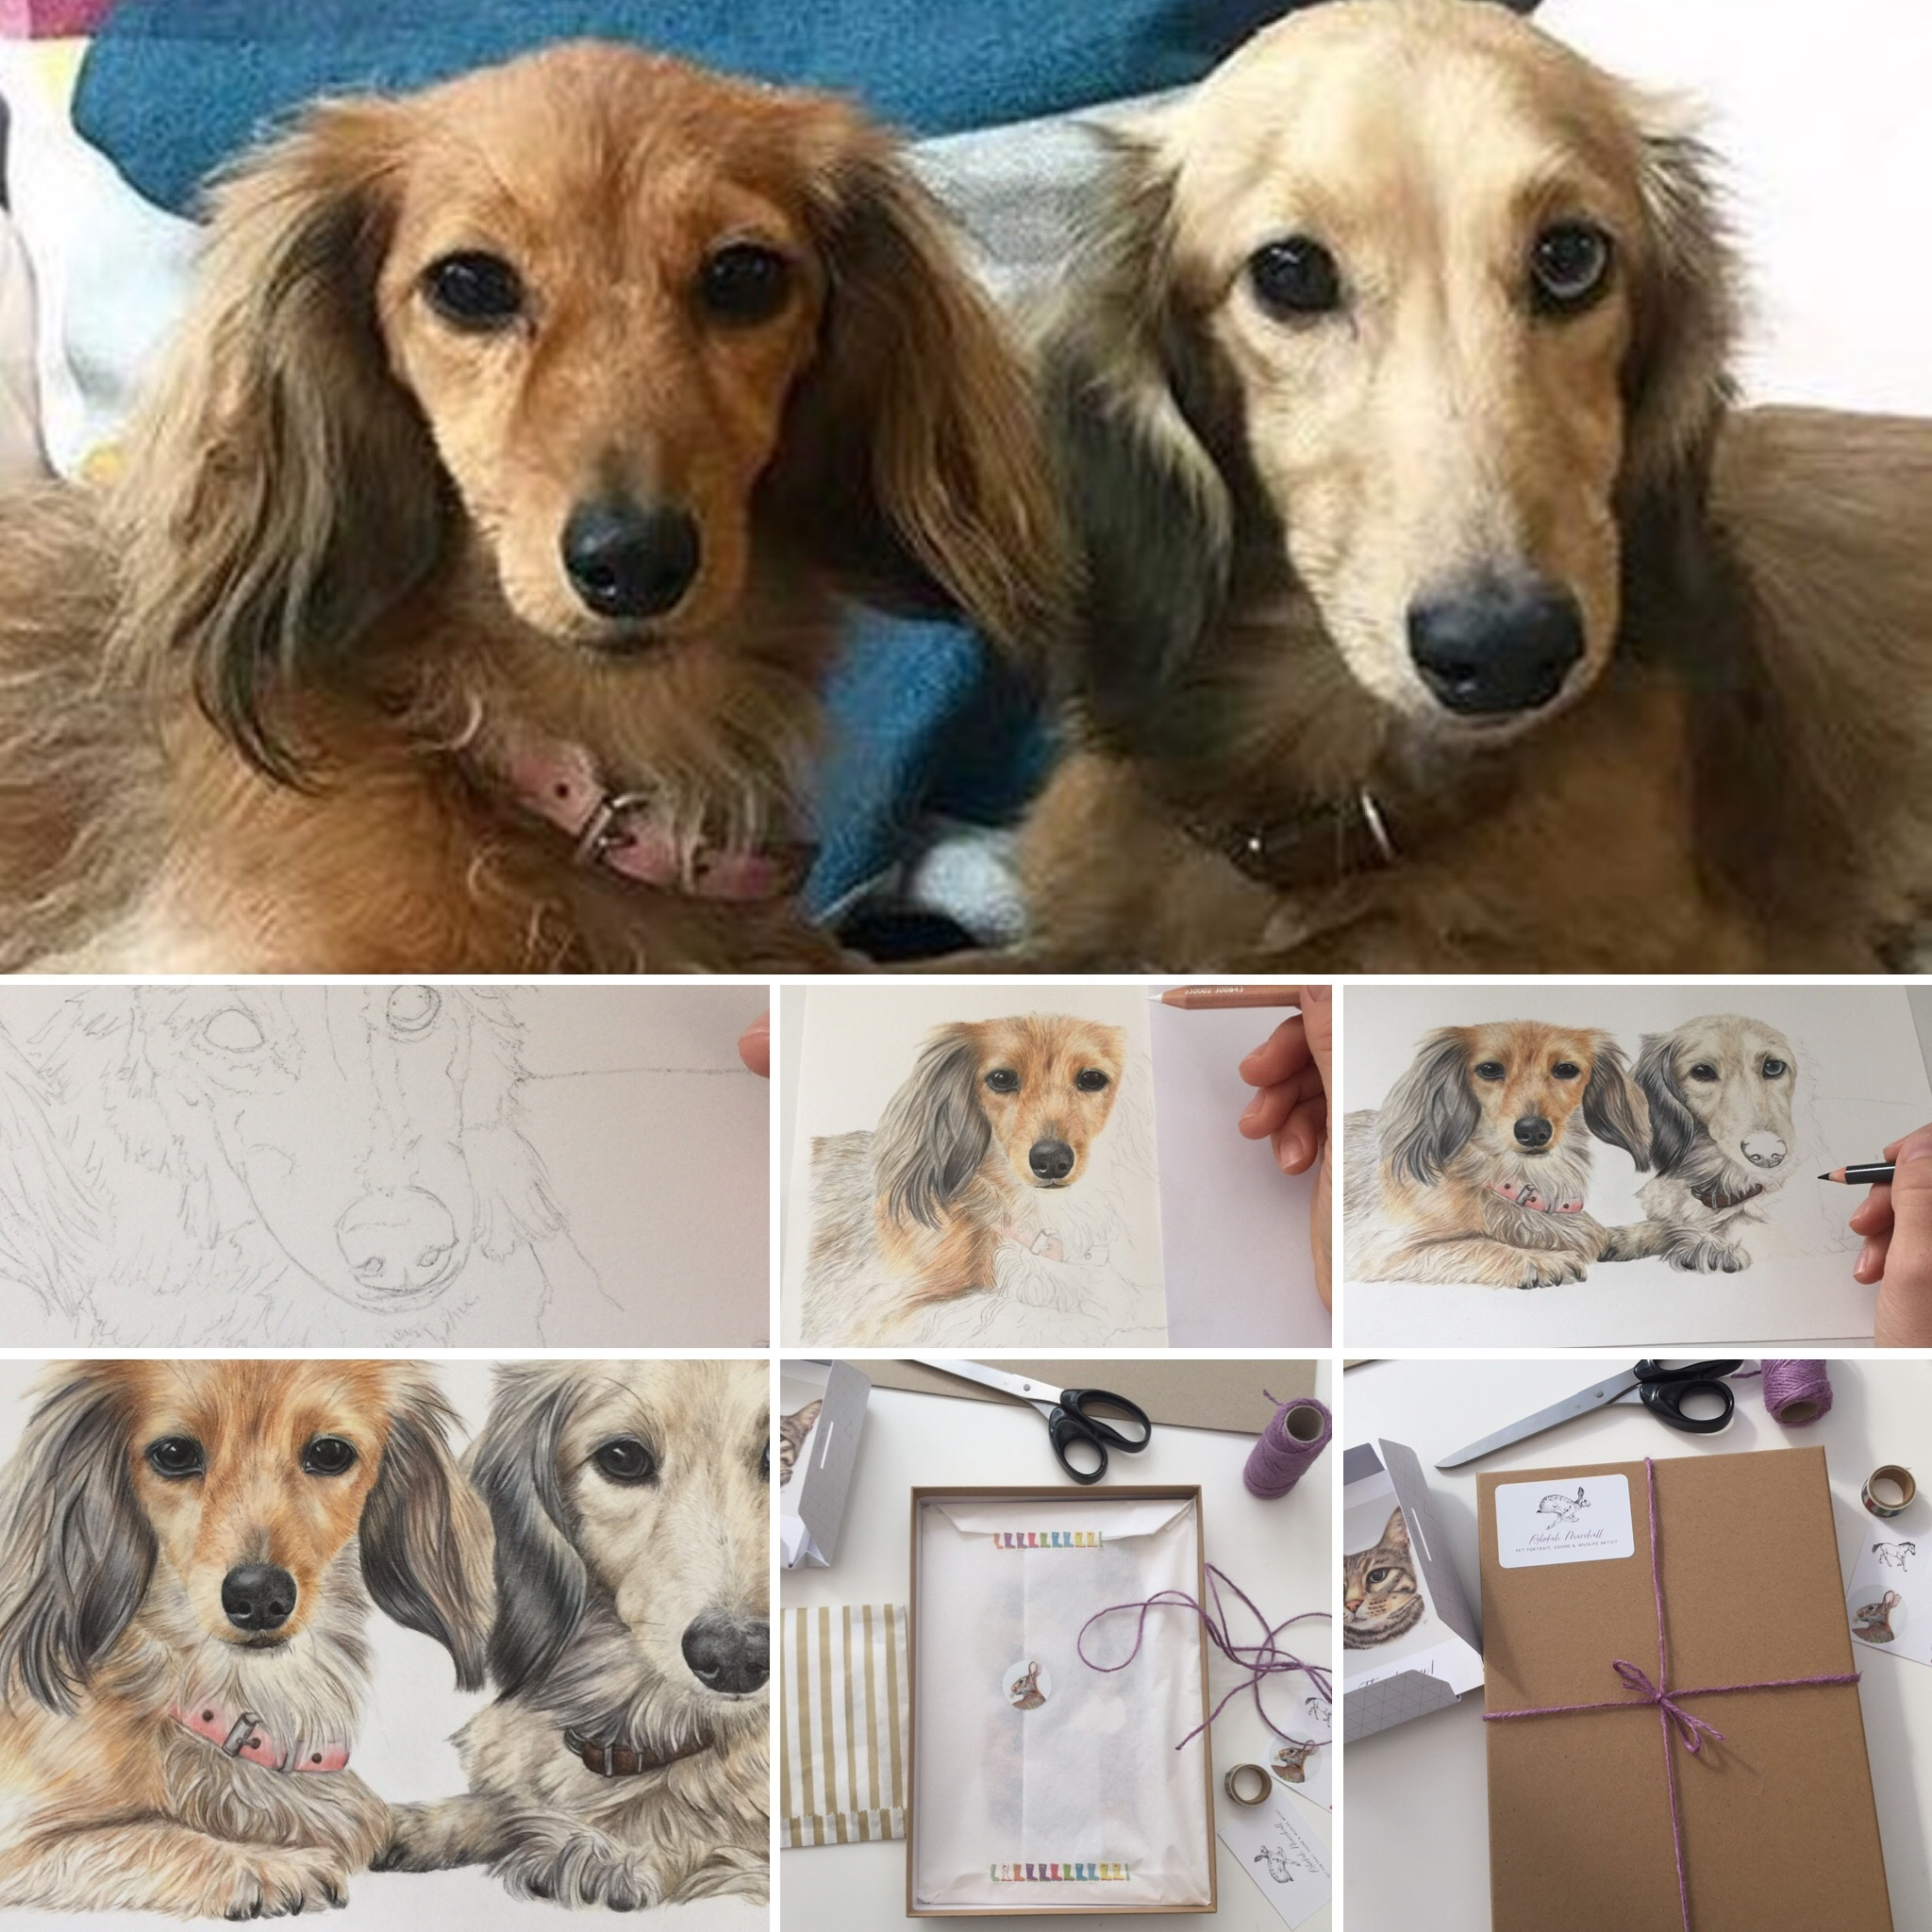 The process of creating a double Dachshund portrait